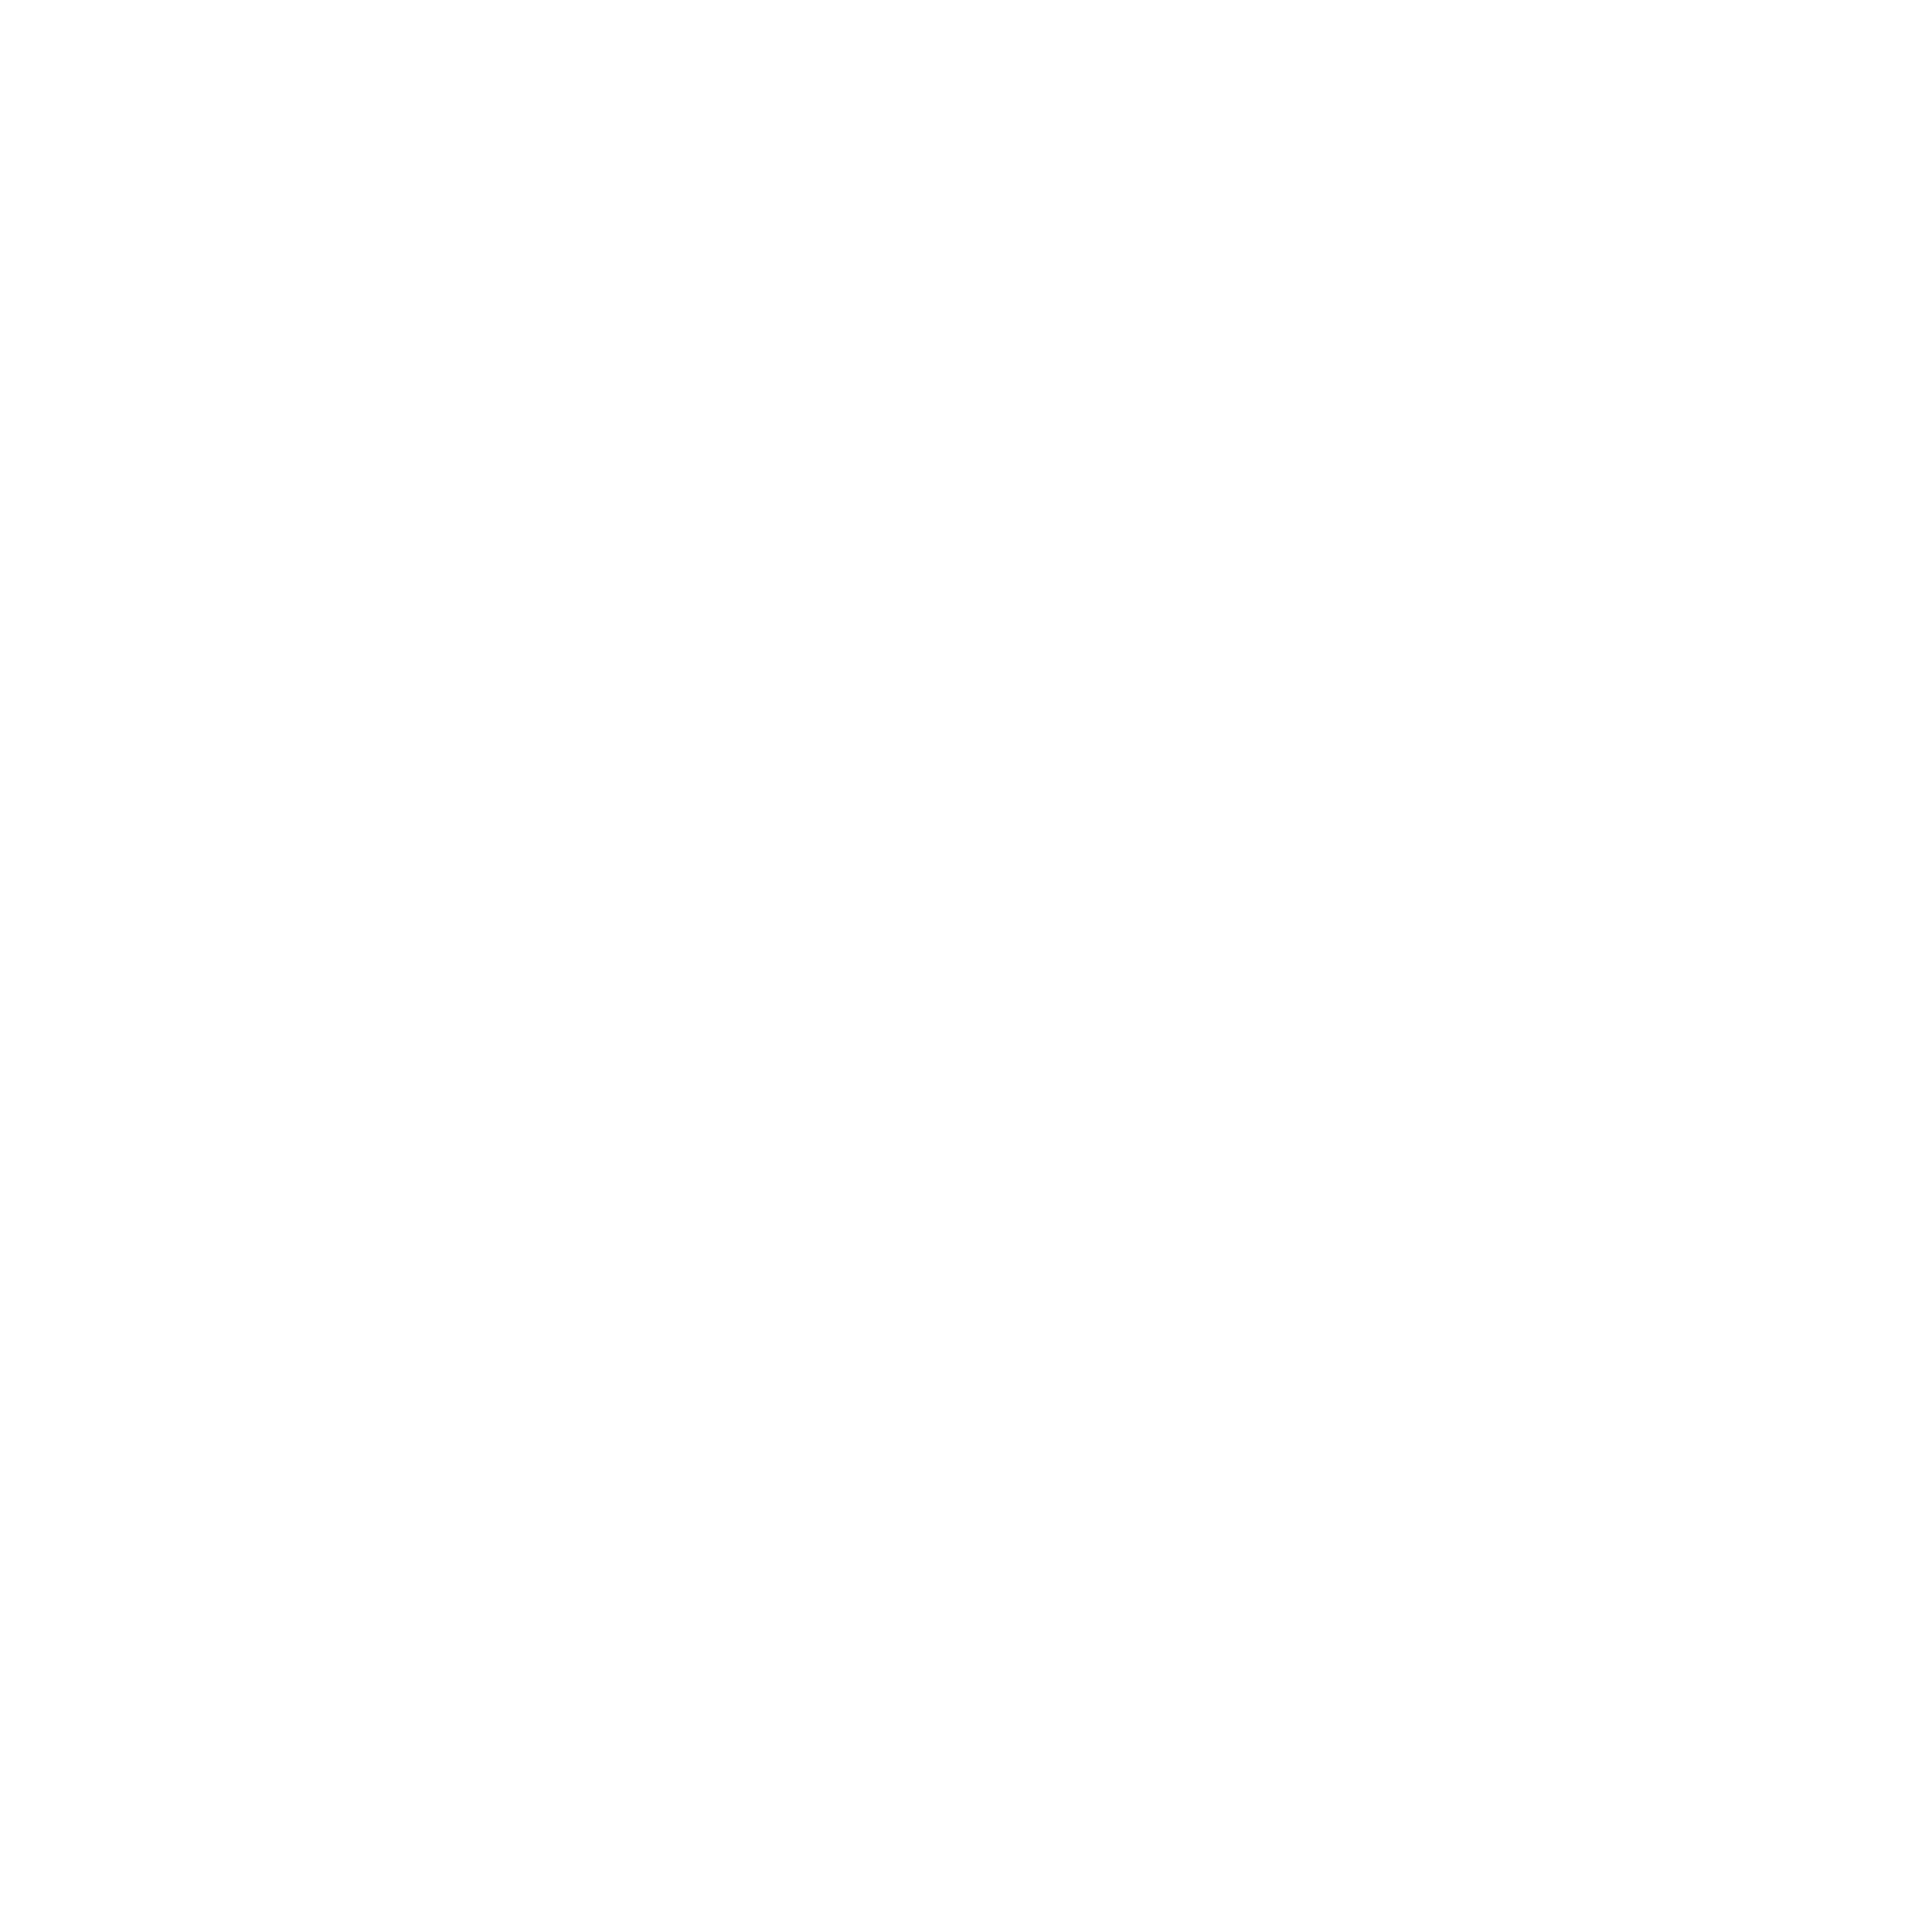 search, mail, and devices icons